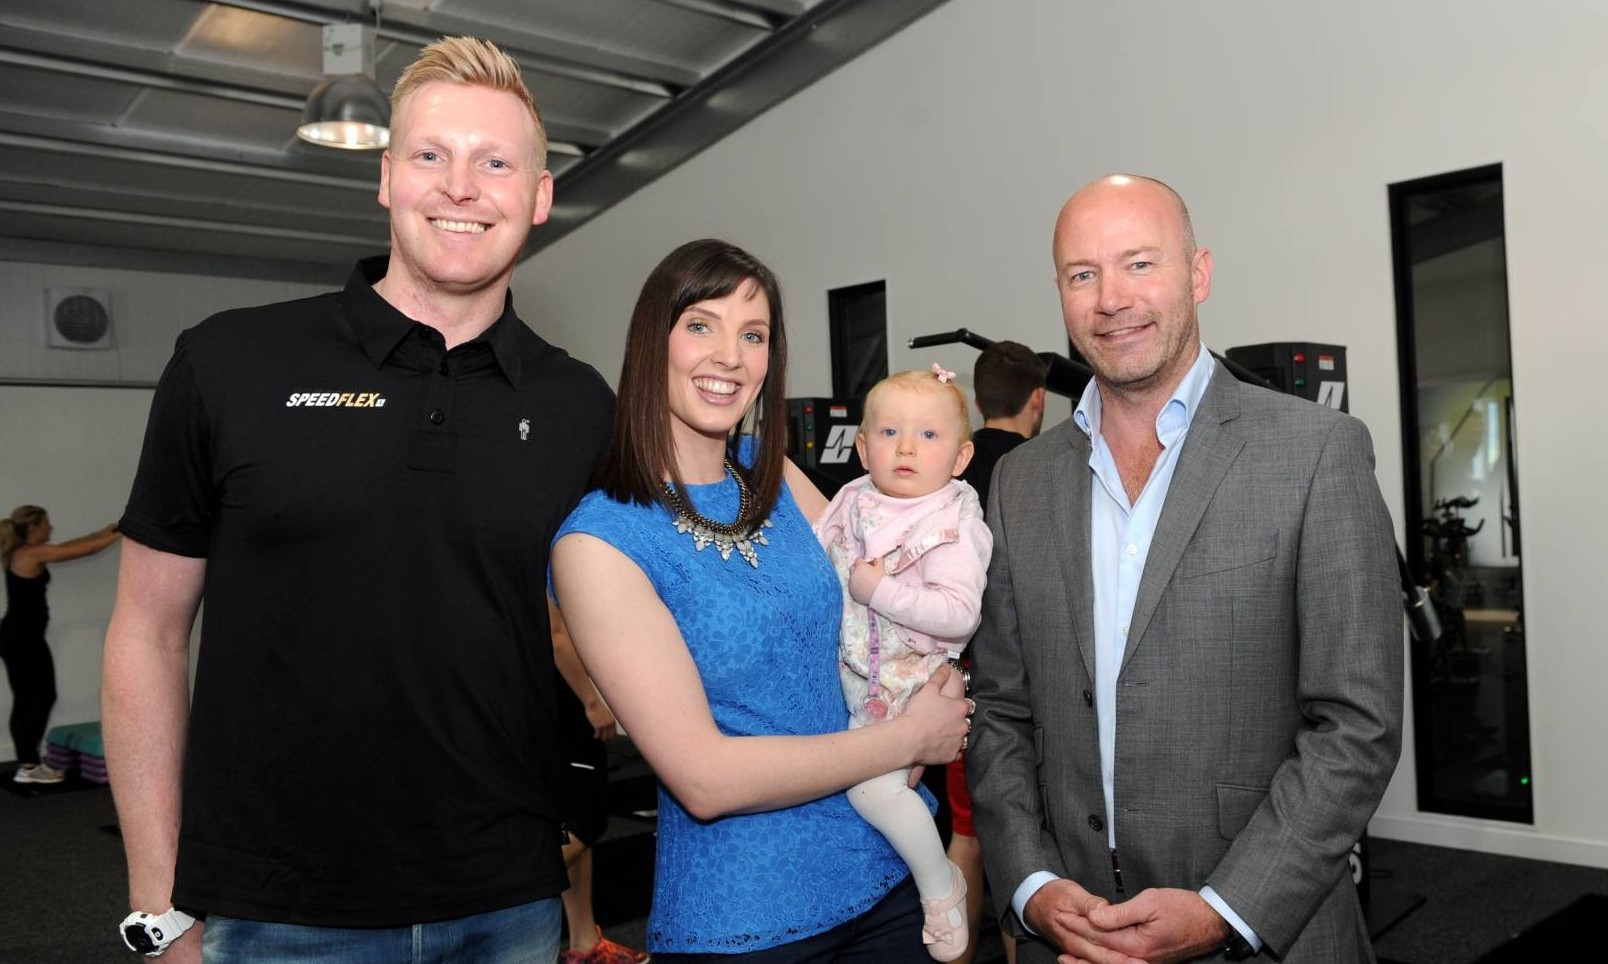 Alan Shearer opened the new Speedflex  Aberdeen gym in Laurencekirk today and is pictured with gym owners Gary and Sally Fairweather with their daughter Peyton.